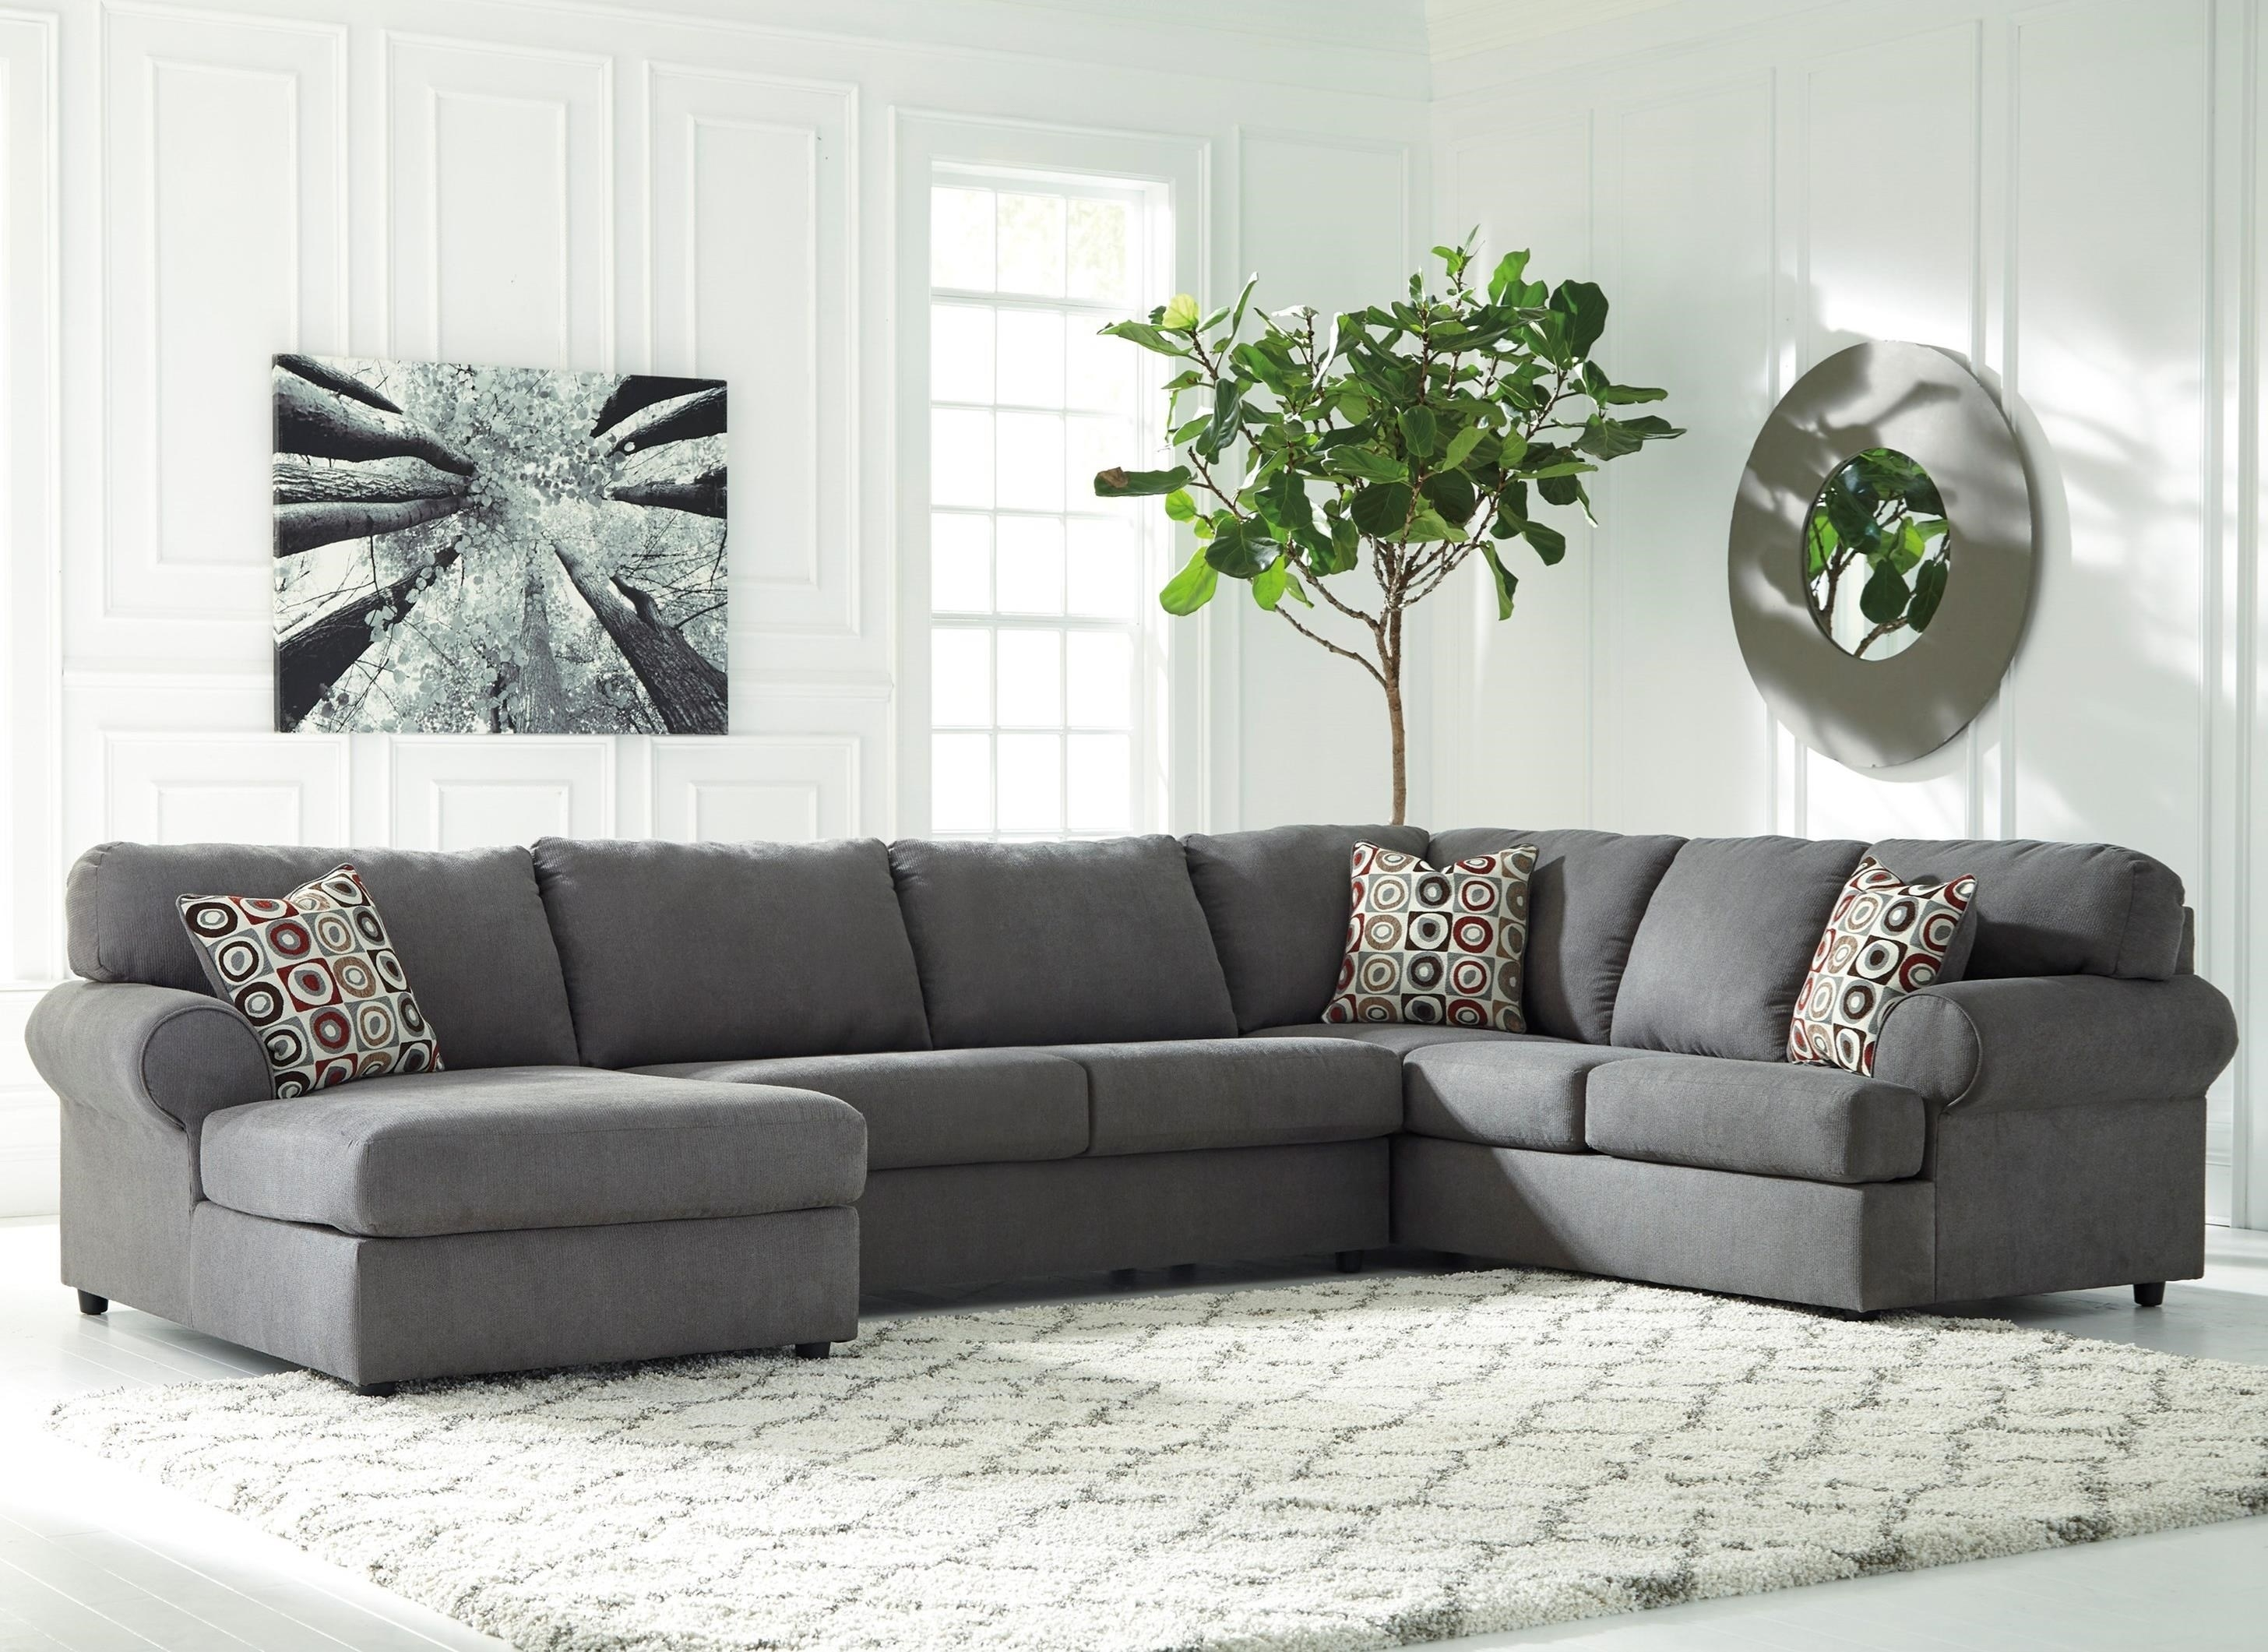 3 Piece Sectional - Locsbyhelenelorasa with regard to Malbry Point 3 Piece Sectionals With Laf Chaise (Image 2 of 30)